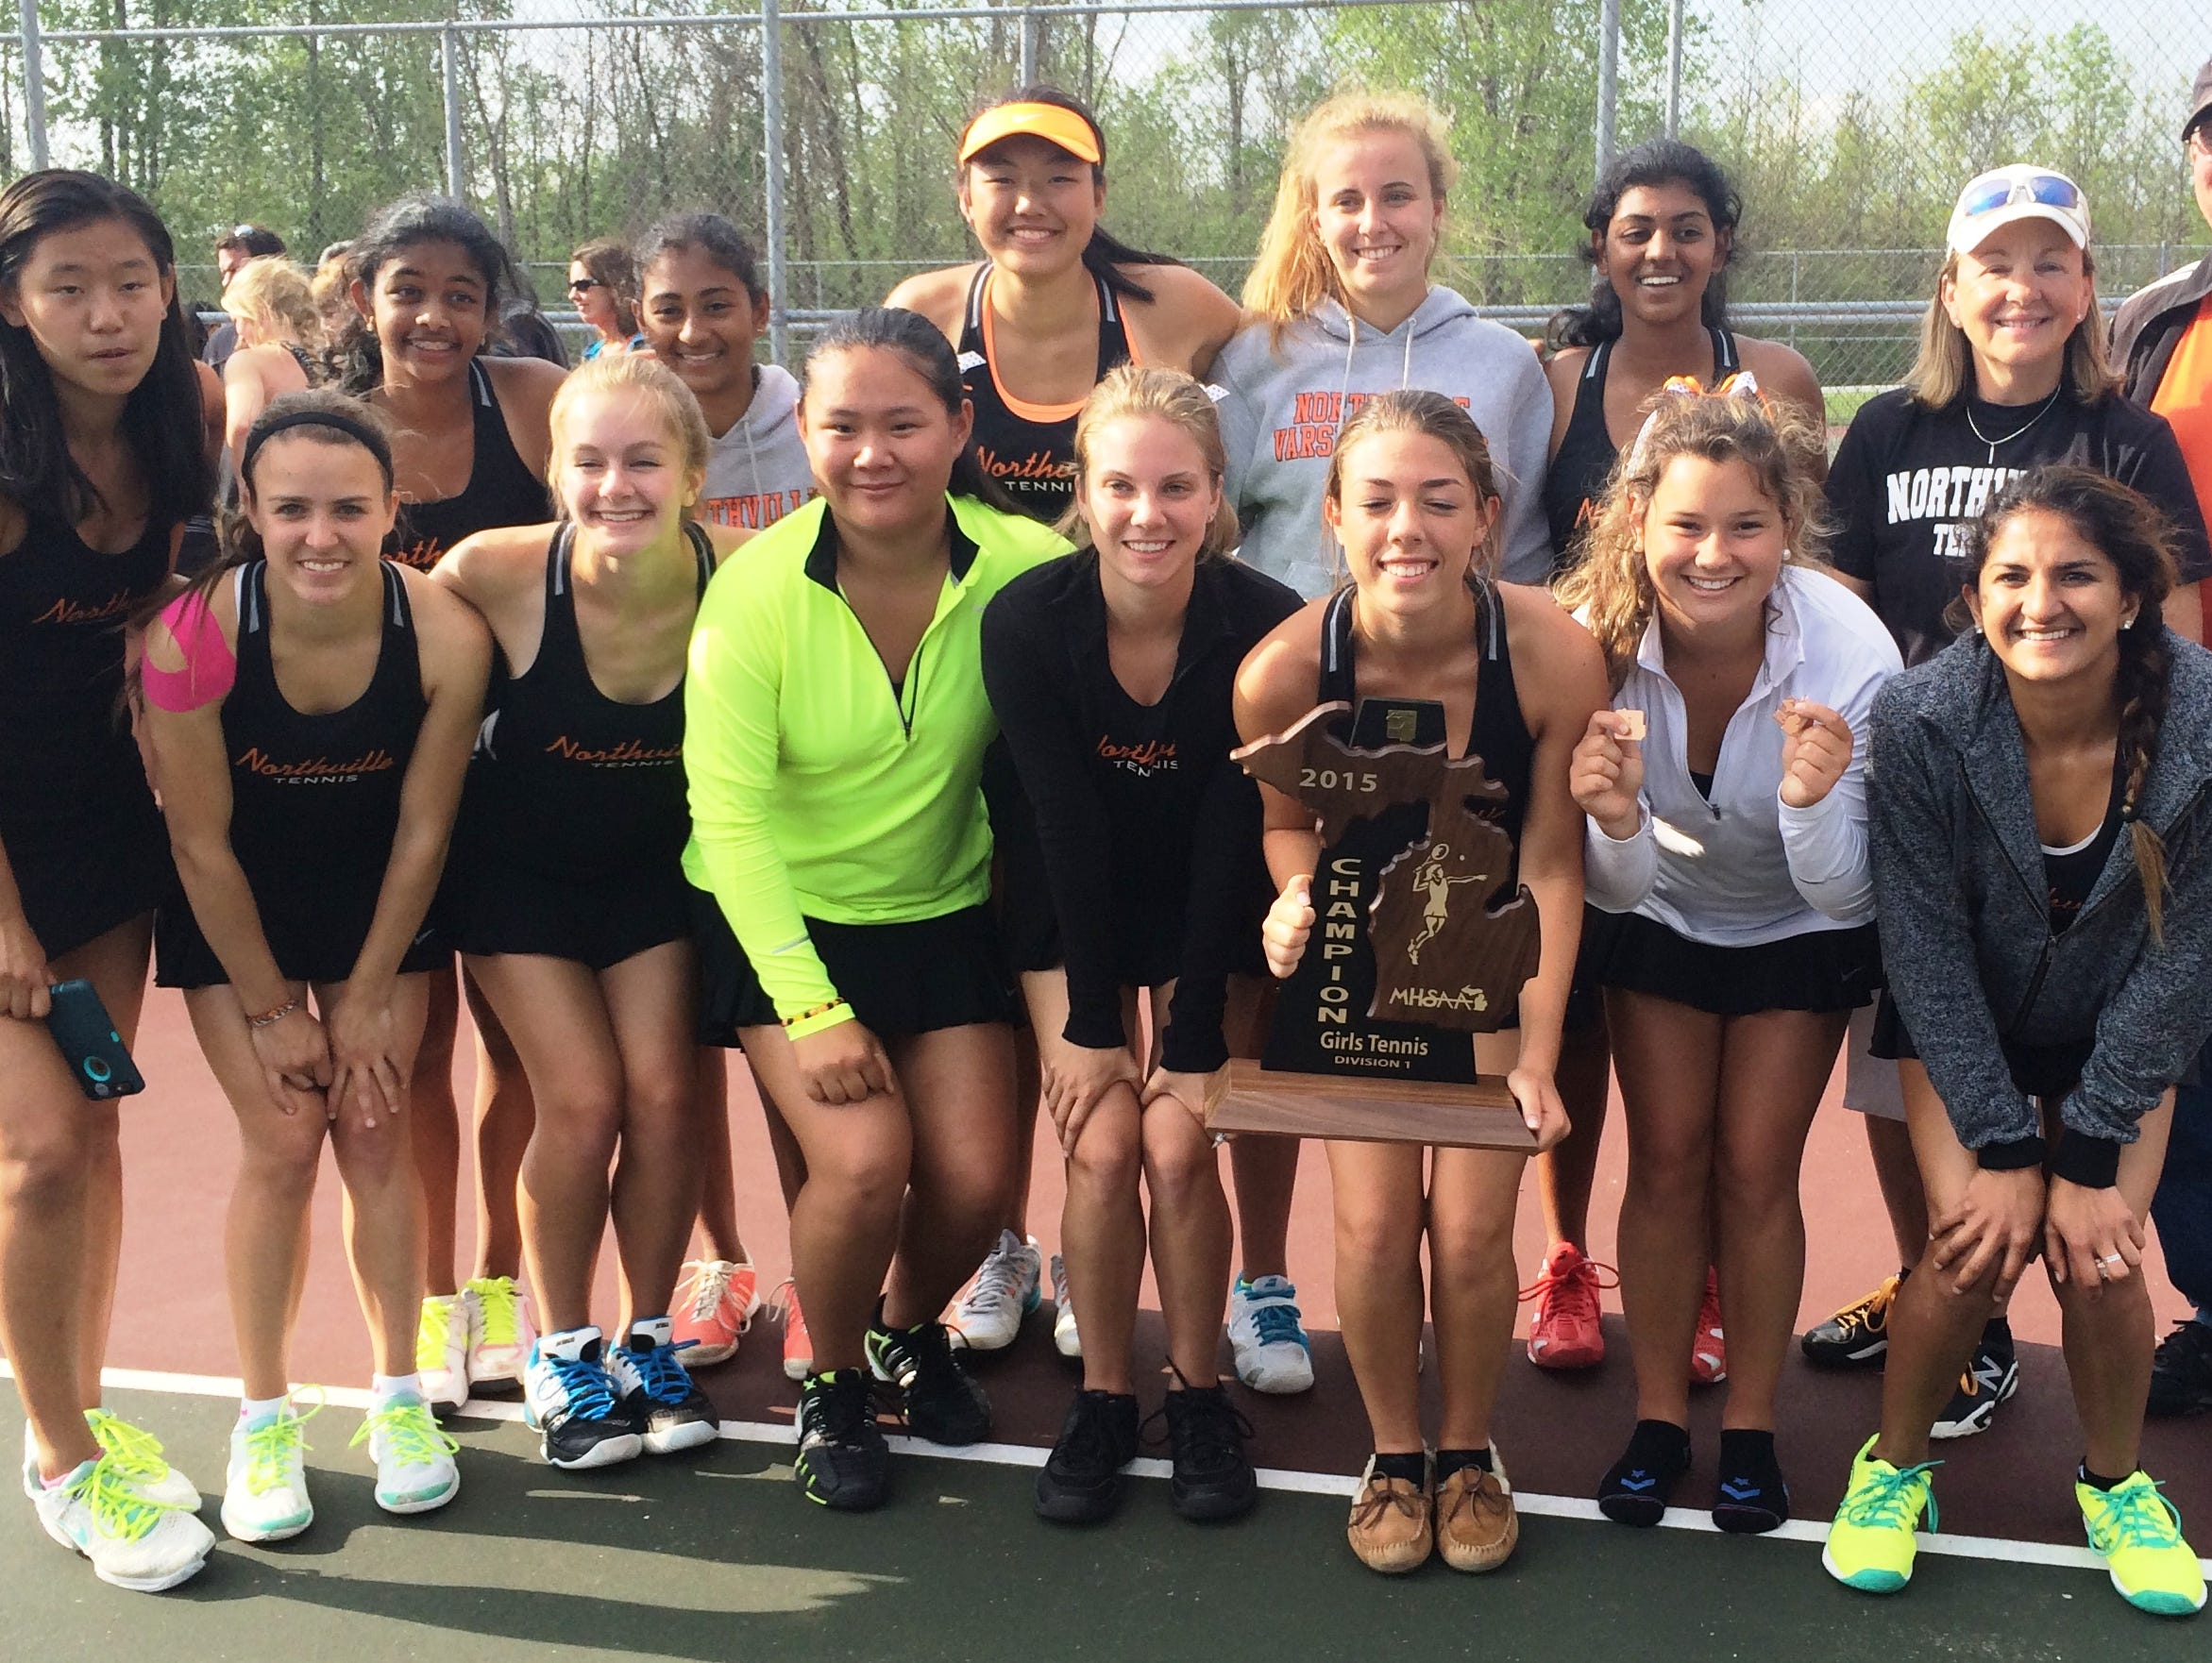 The Northville girls tennis team brought home the first-place trophy by winning Friday's MHSAA Division 1-Region 2 tournament at Novi Middle School.